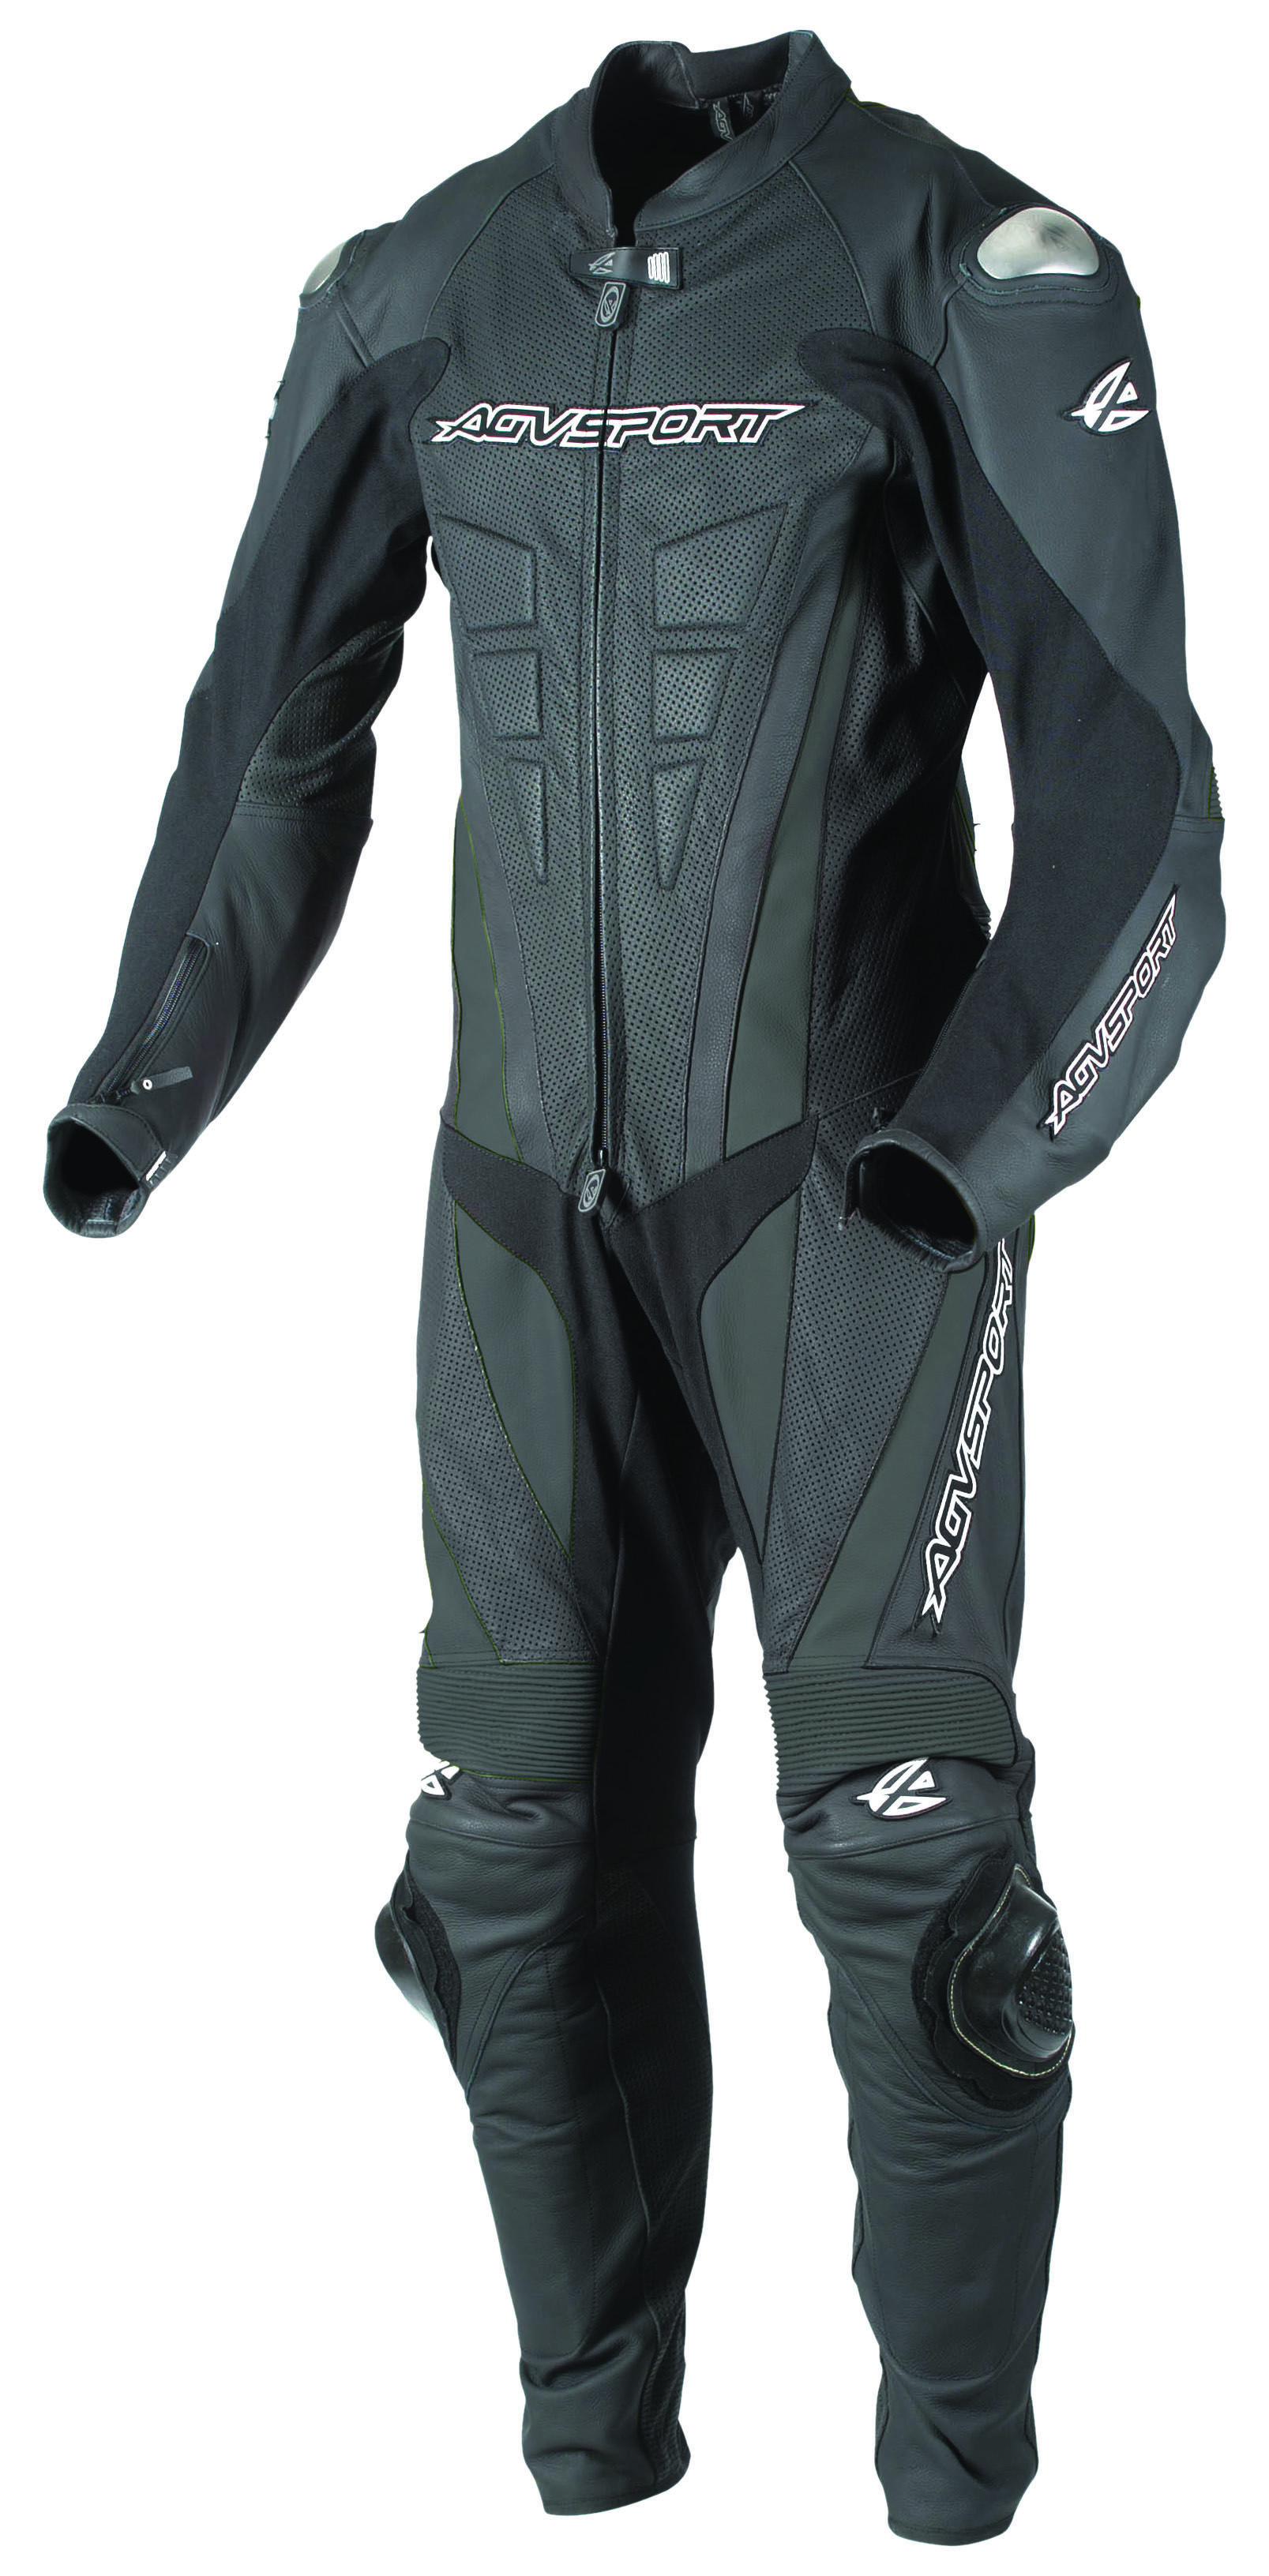 AGVSPORT Bullet (Black) 1-Piece Leather Suit A simpler design ideal for  track day and recreation riders. Produced of premium 1.3mm(body) to  1.4mm(impact ...